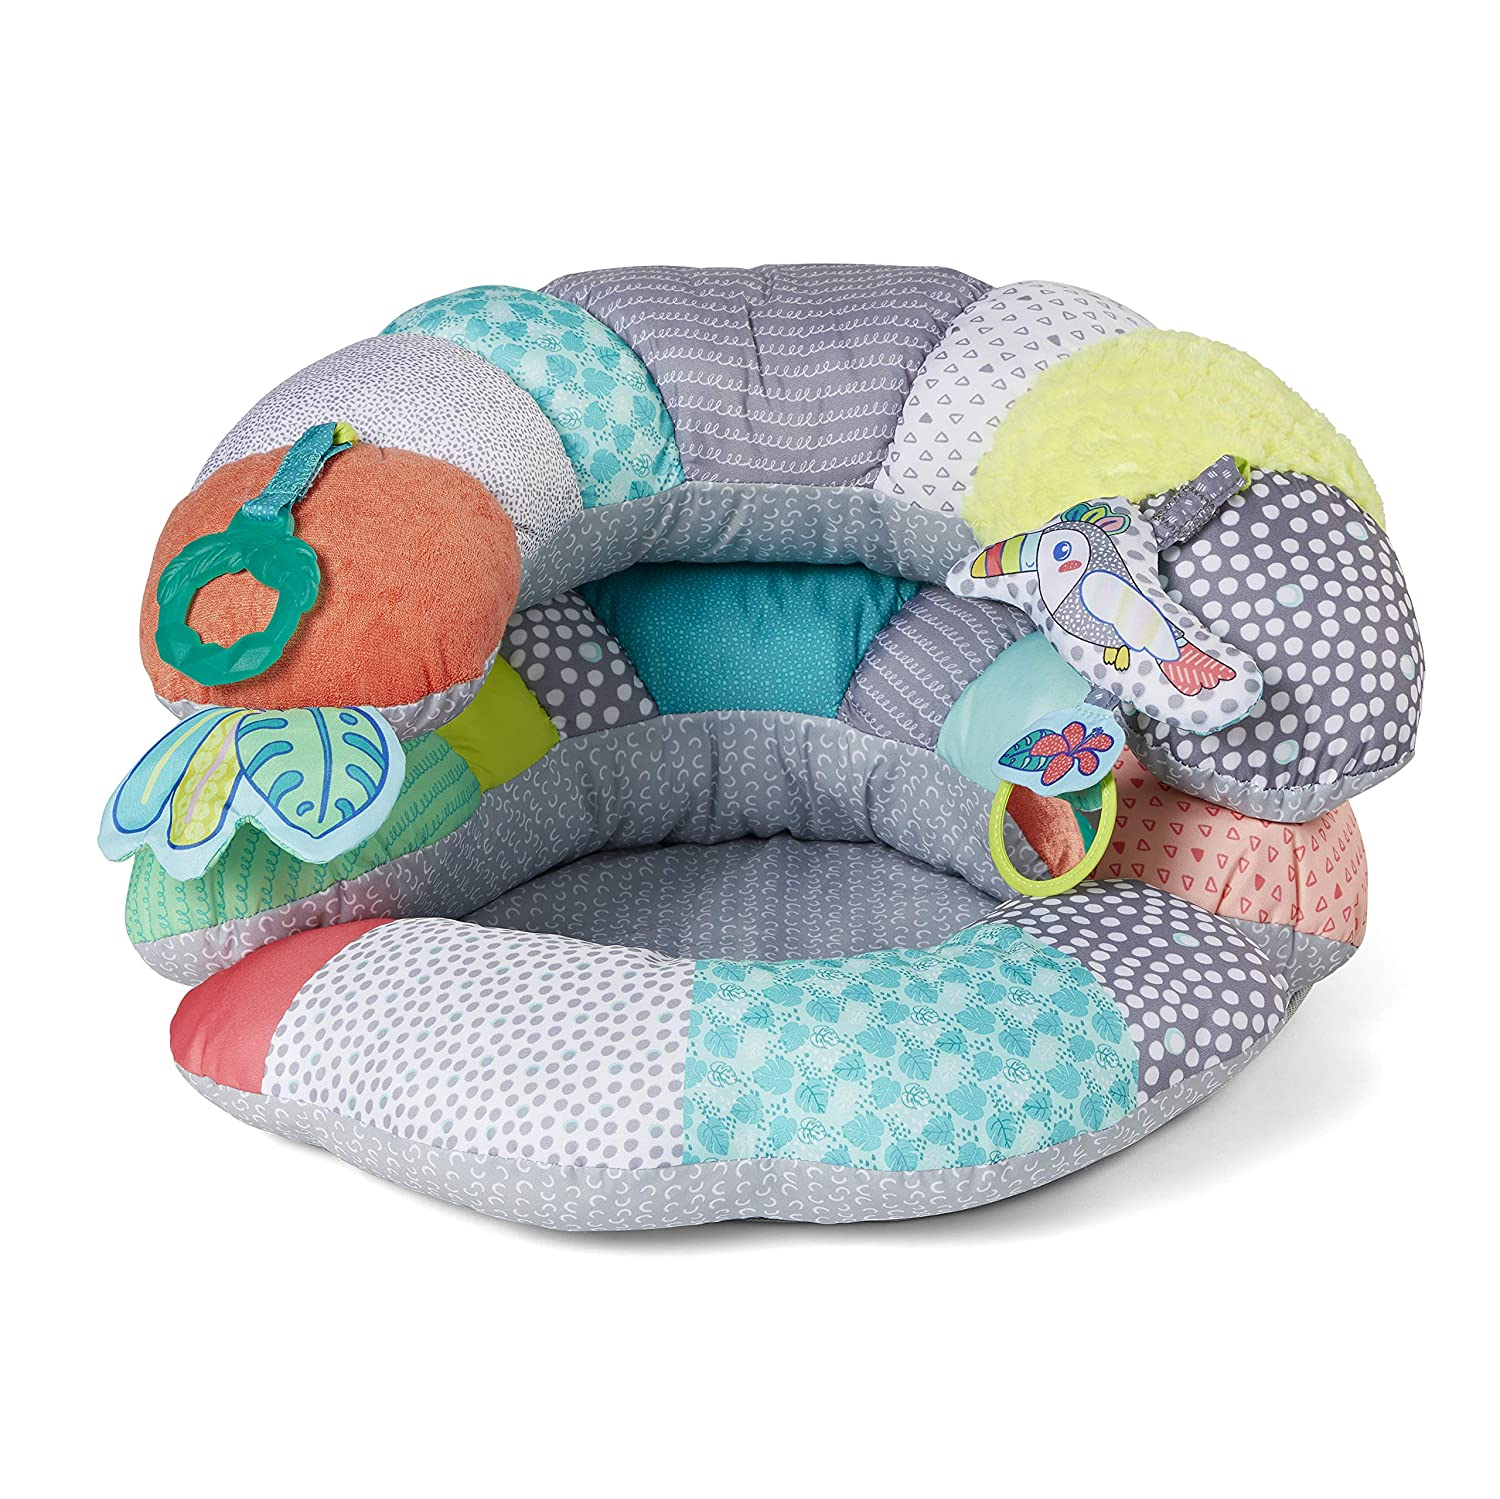 Infantino 2-in-1 Tummy Time & Seated Support, Multi